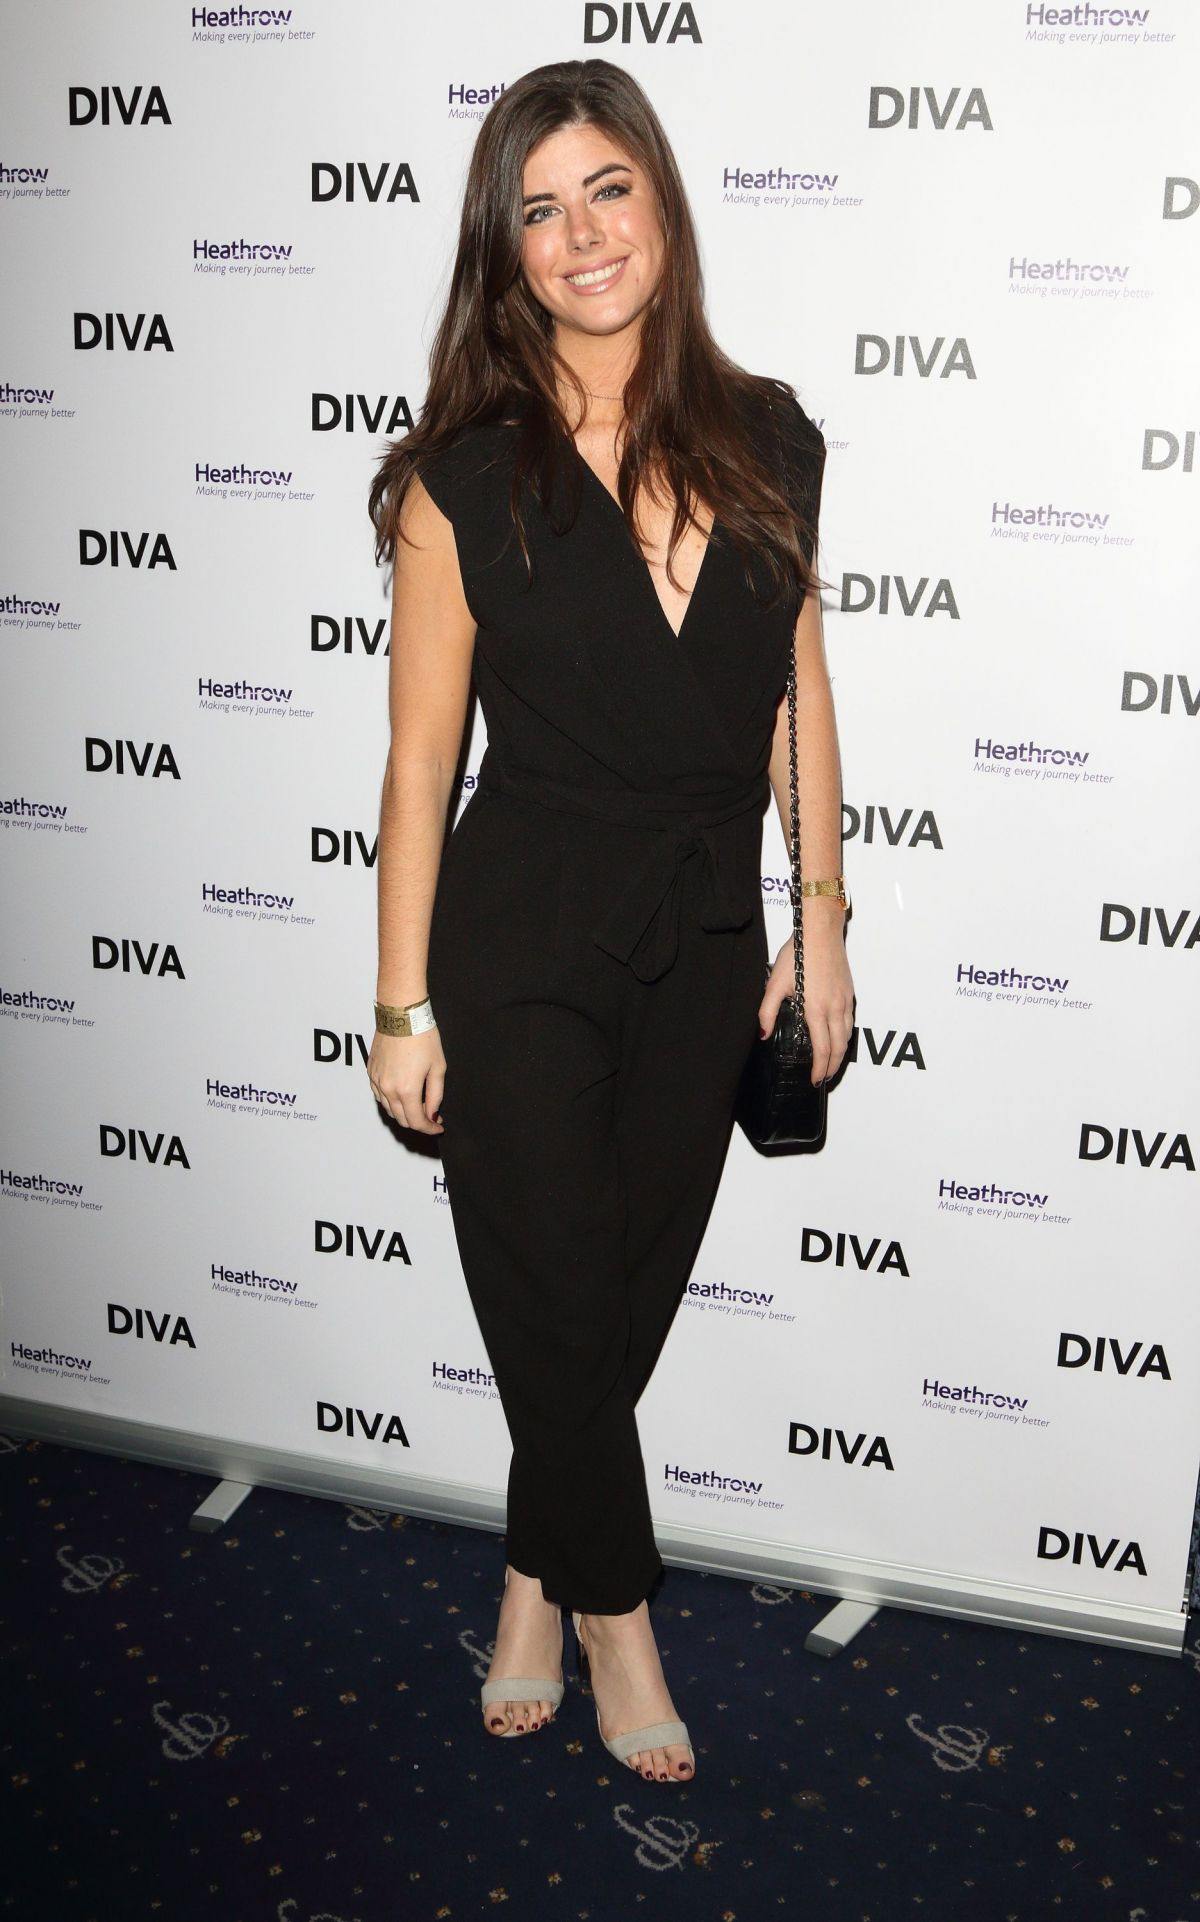 LOUISE MICHELLE at Diva Magazine Awards in London 03/23/2017